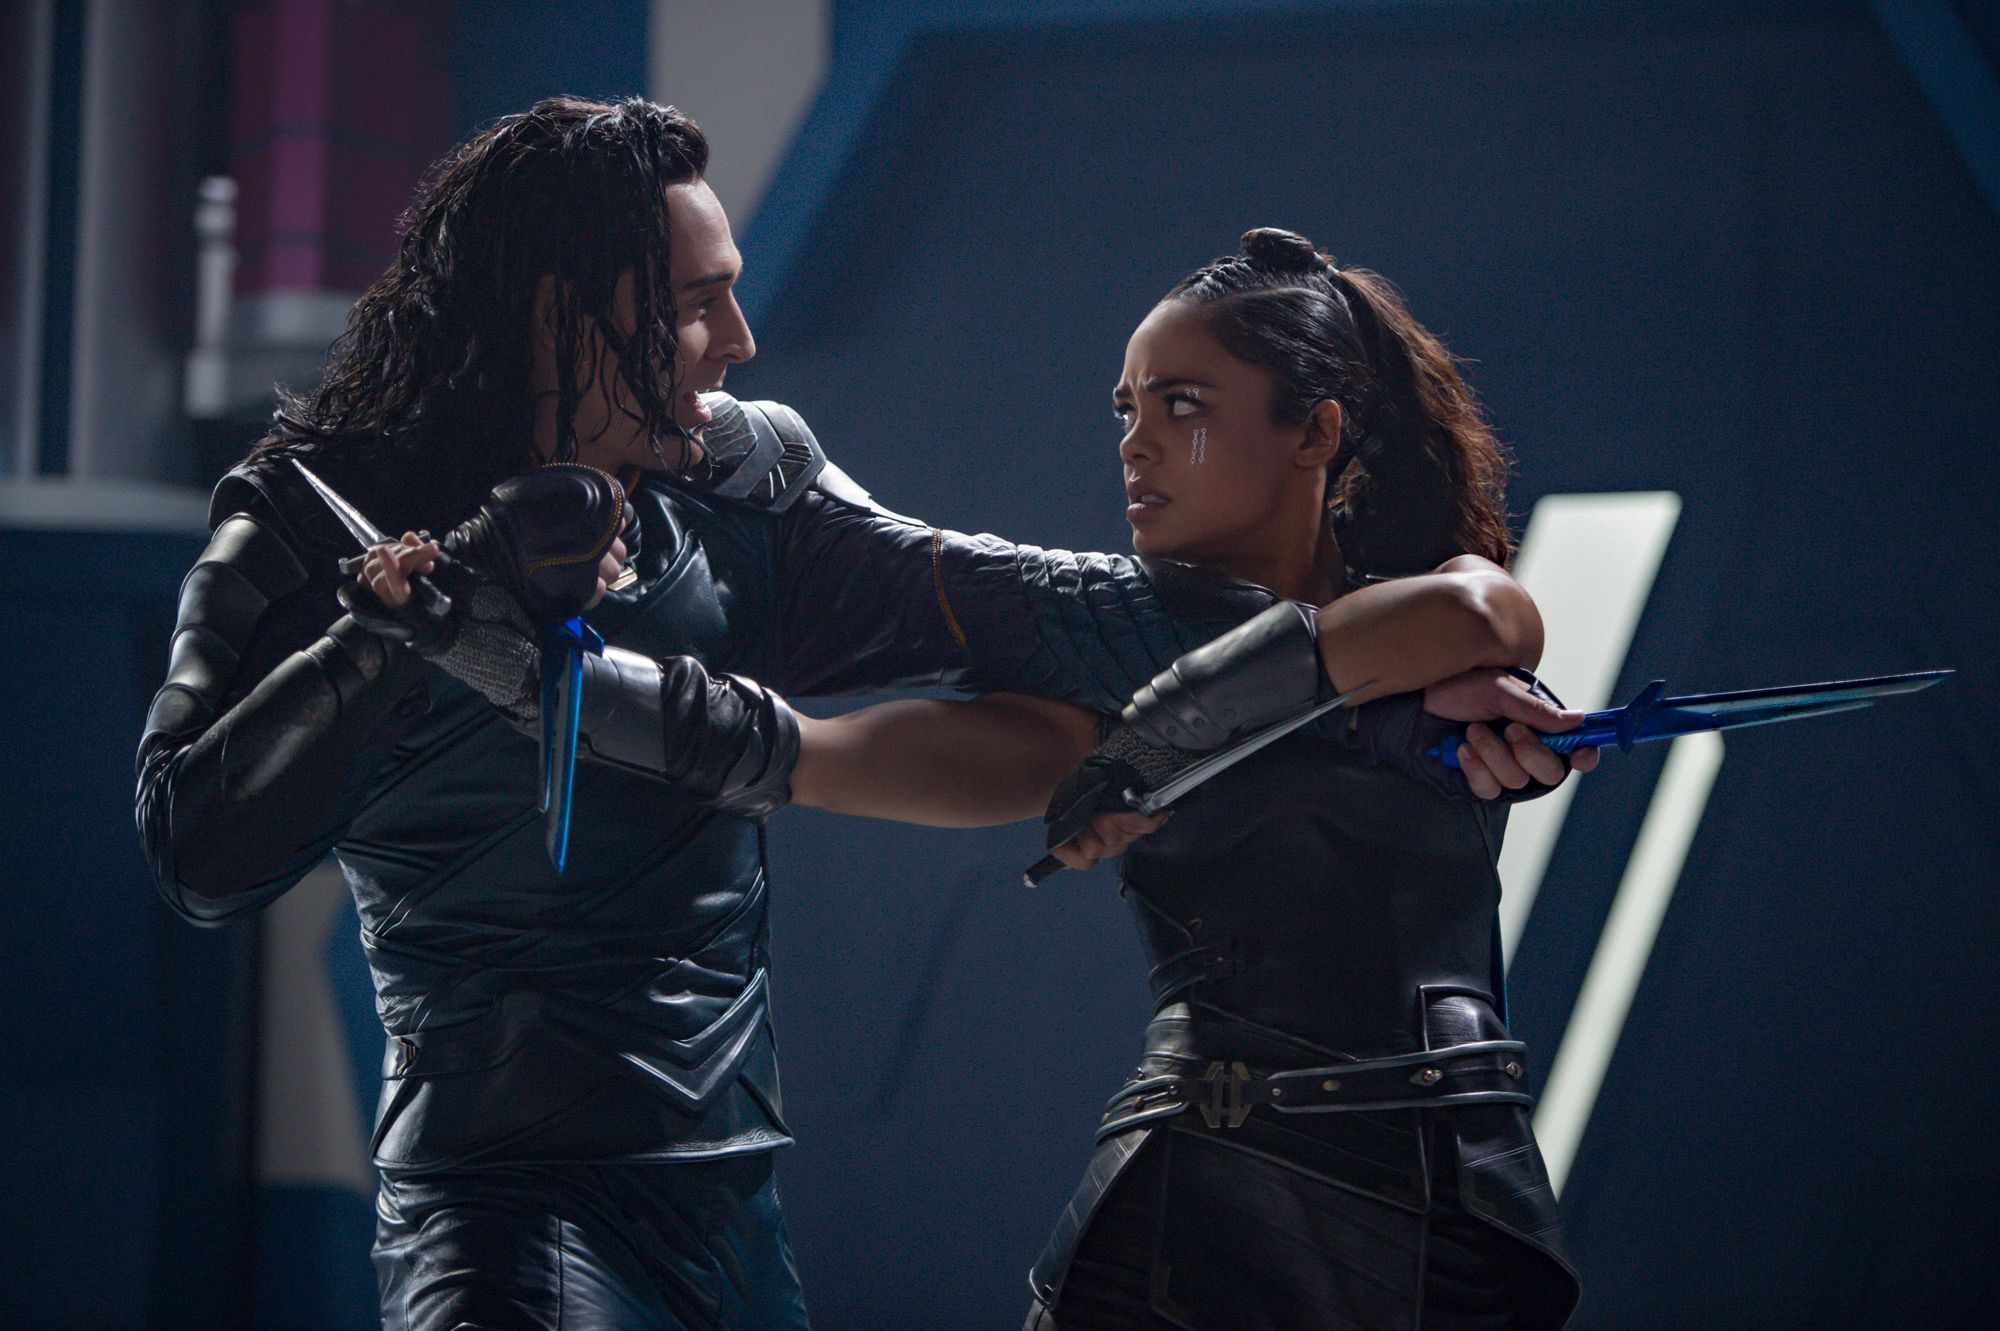 Thor: Ragnarok: A Cut Scene Confirmed Valkyrie as Bisexual